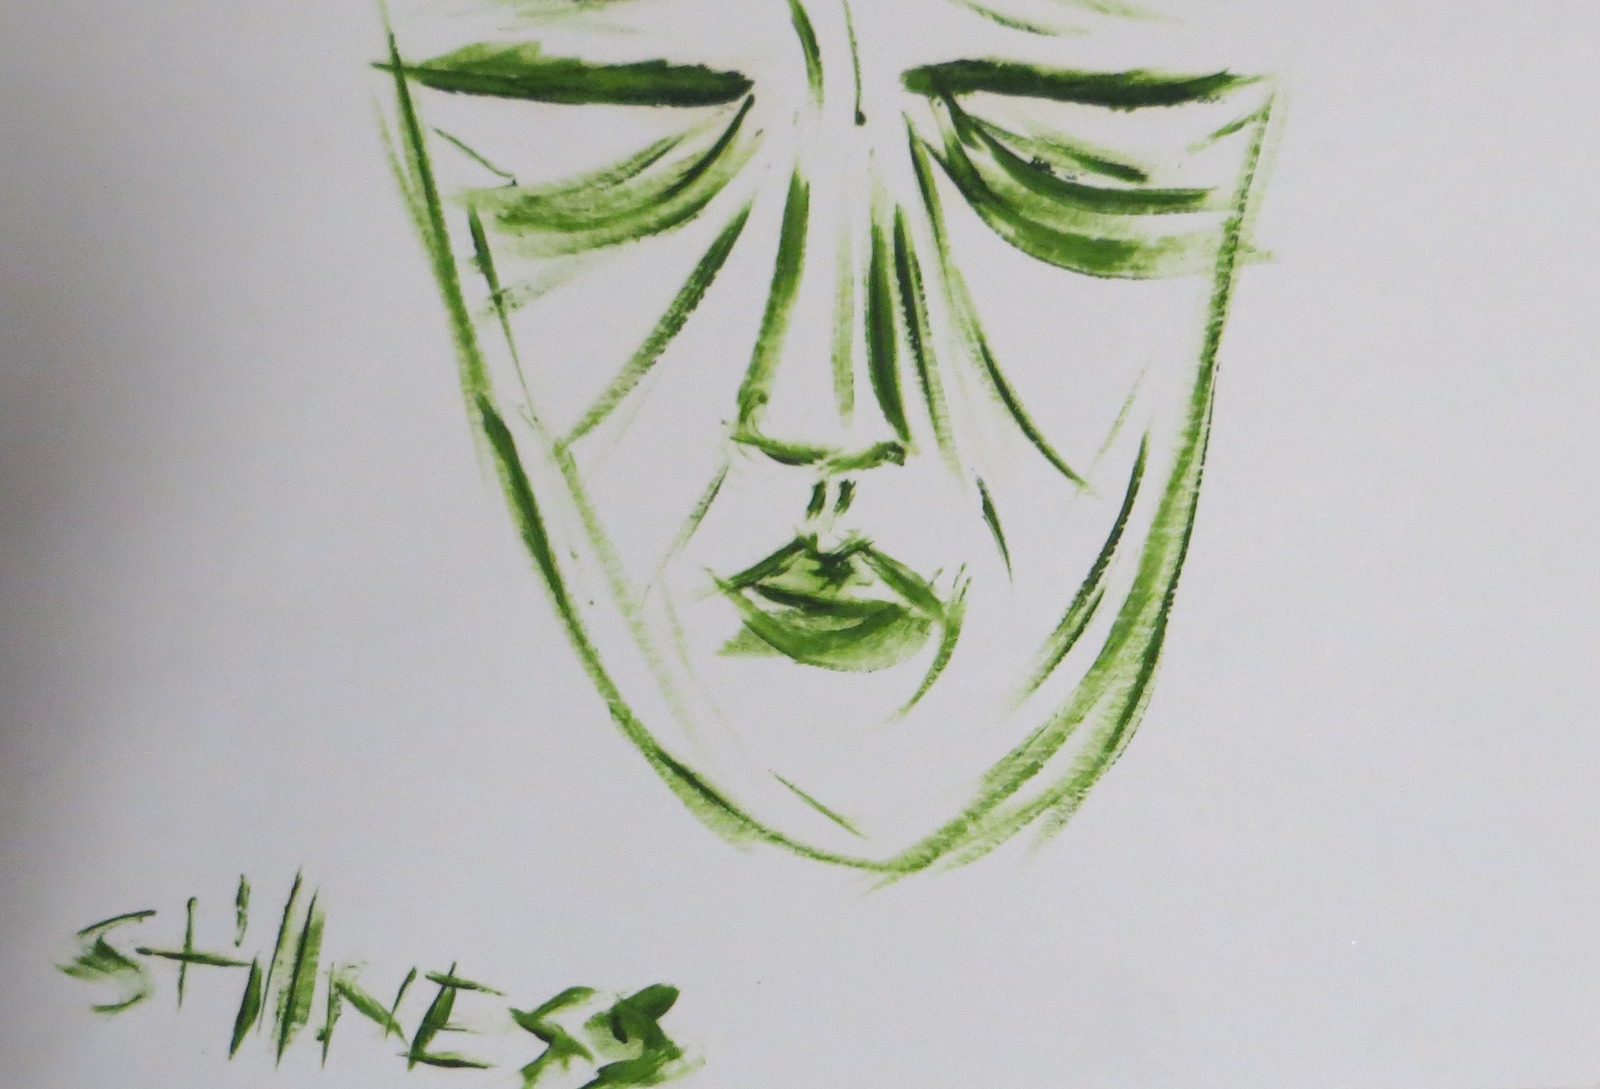 illustration of person's face with closed eyes and the word stillness underneath it